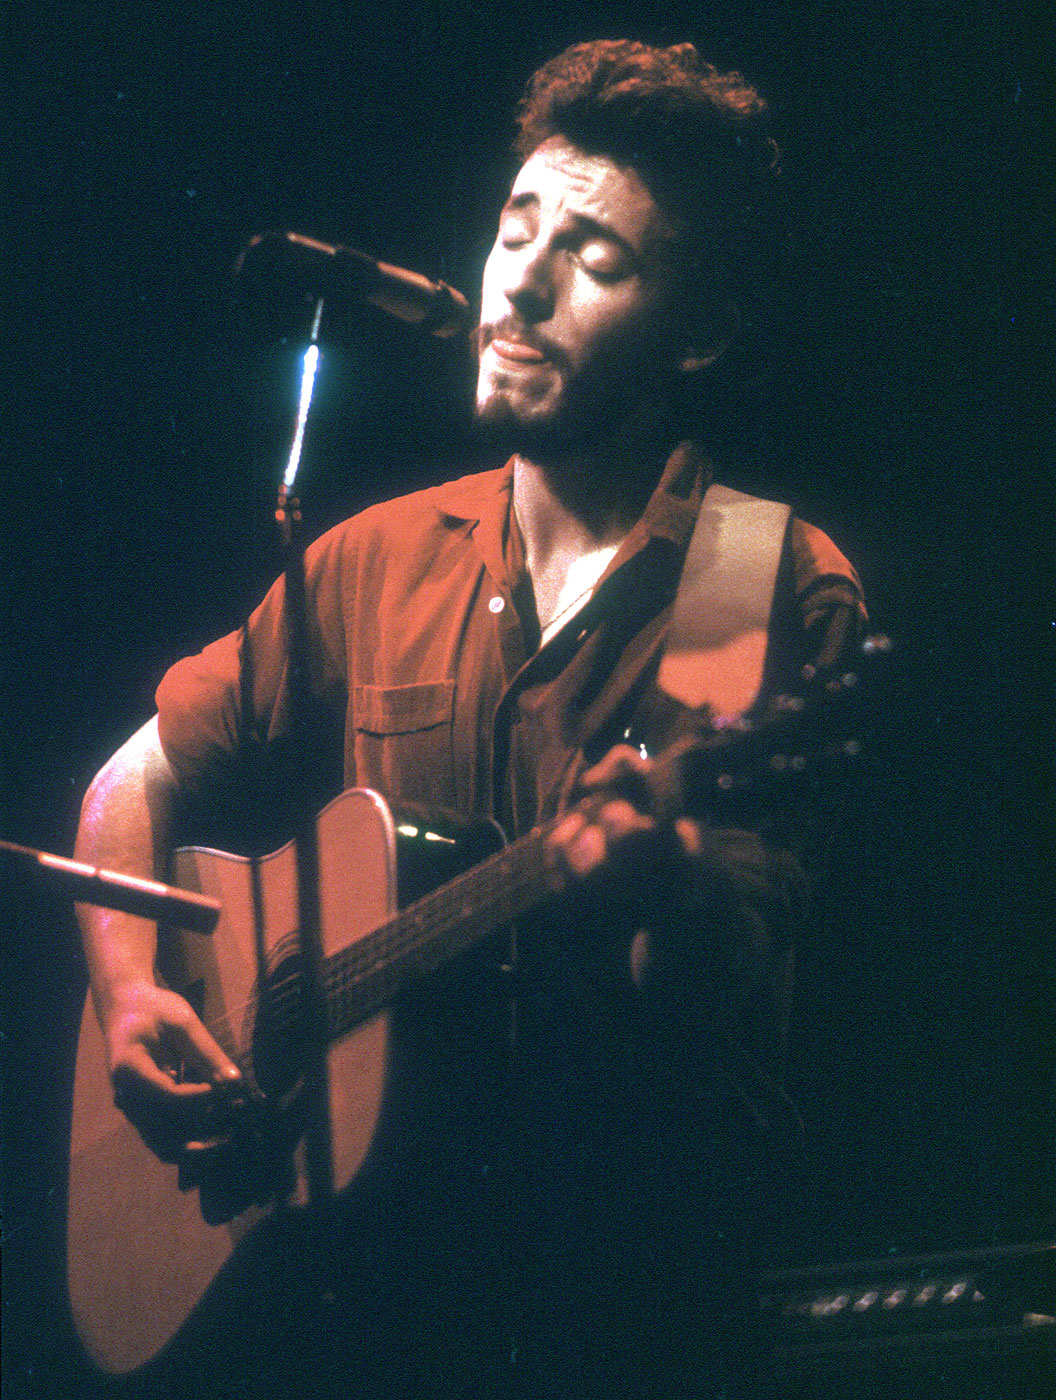 """1973:                                Springsteen released his first album, Greetings from Asbury Park, N.J. While the album didn't sell well, it started Springsteen's legacy with tracks like """"Blinded by the Light"""" and """"Growin' Up"""". During his 2009 'Working on a Dream' tour, Springsteen the album in its entirety. """"This was the miracle,"""" he told the crowd. """"This was the record that took us from way below zero to…one."""""""